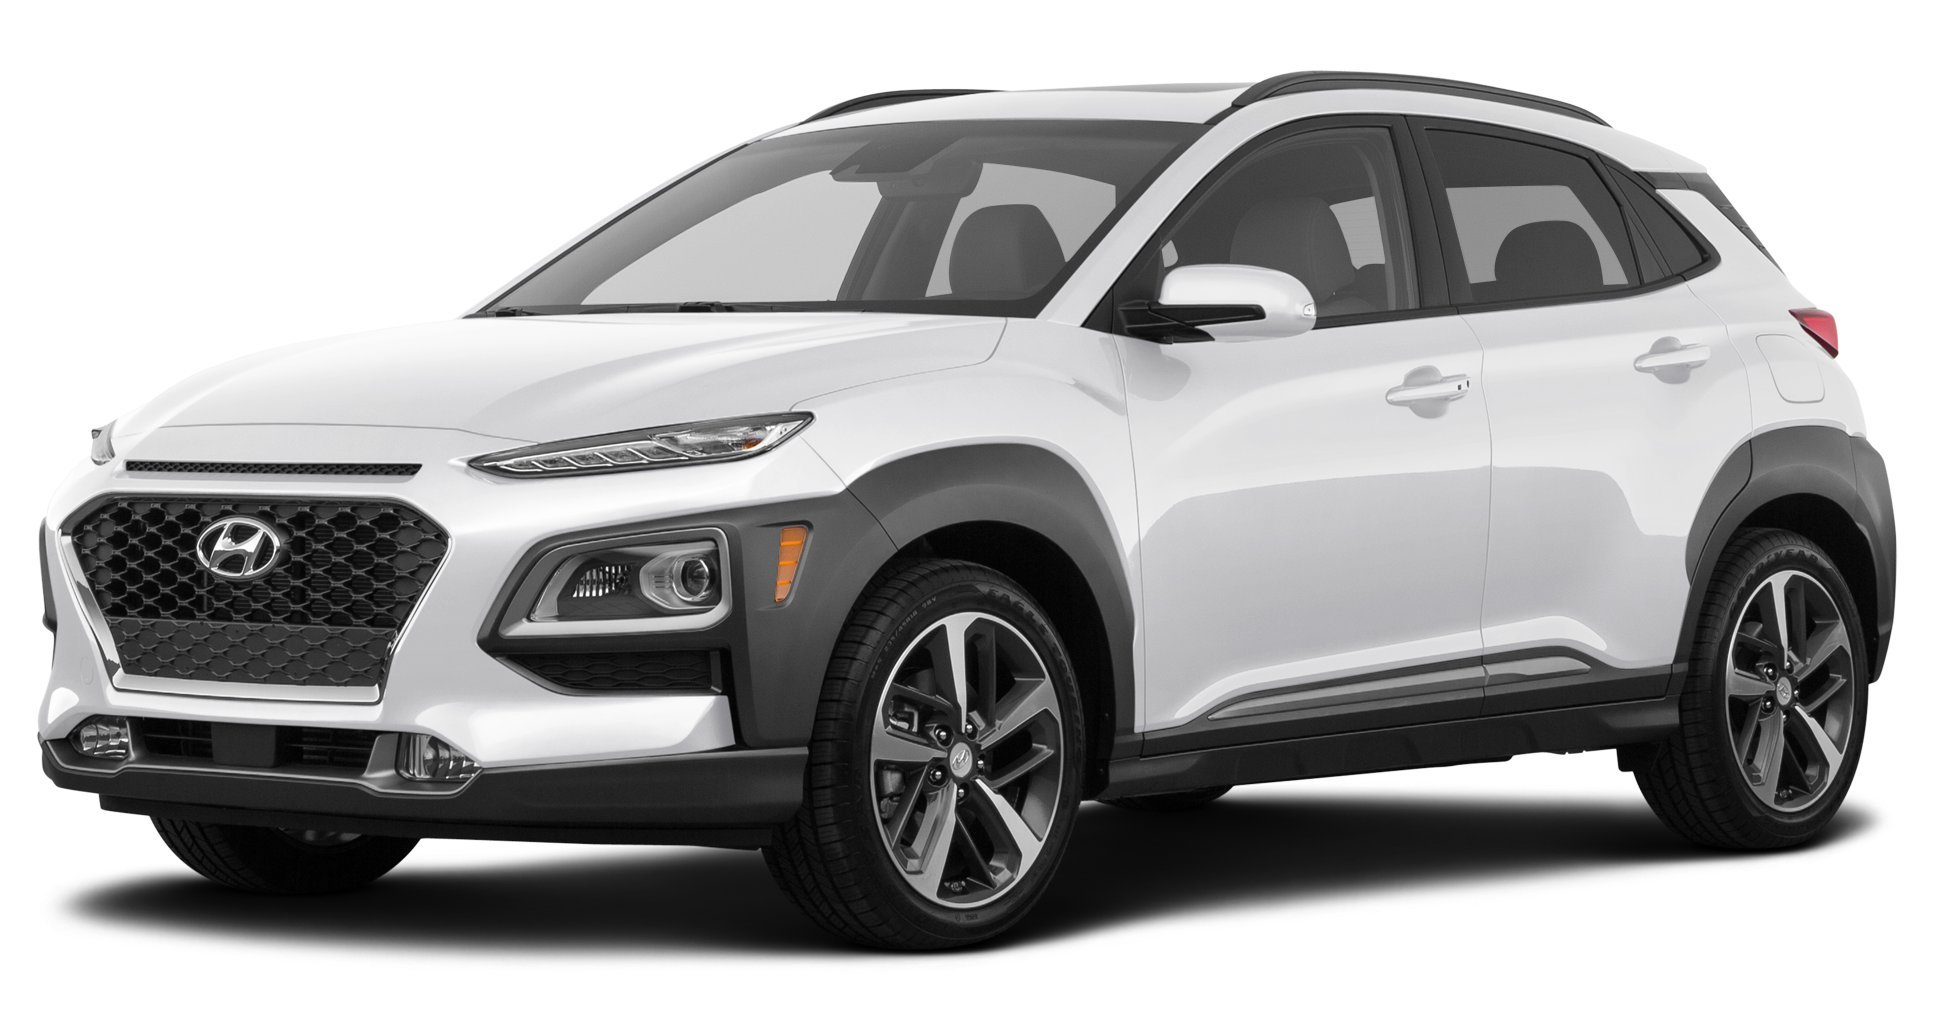 amazon com 2018 hyundai kona reviews images and specs vehicles rh amazon com 2018 hyundai kona limited price 2018 hyundai kona limited colors